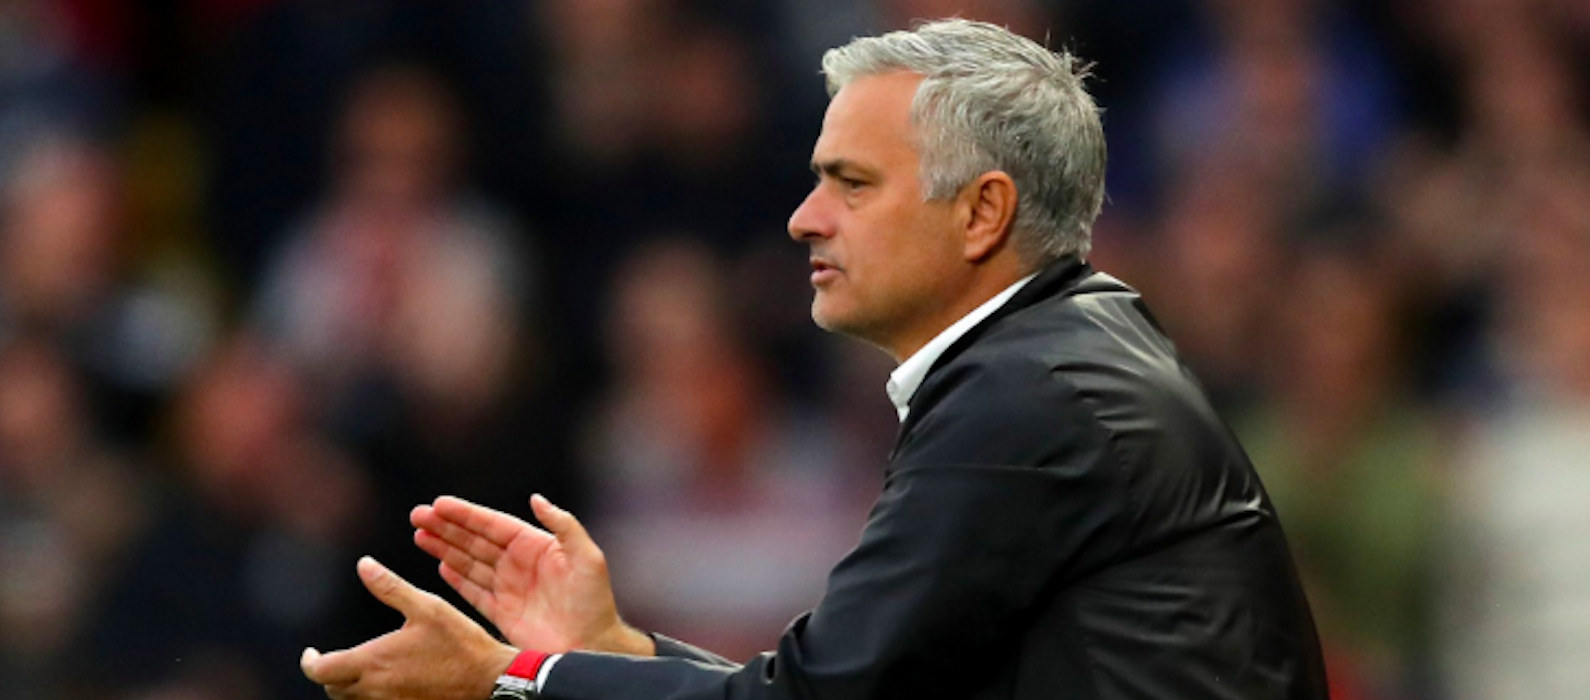 Maicon: Jose Mourinho will get through difficult time at Manchester United